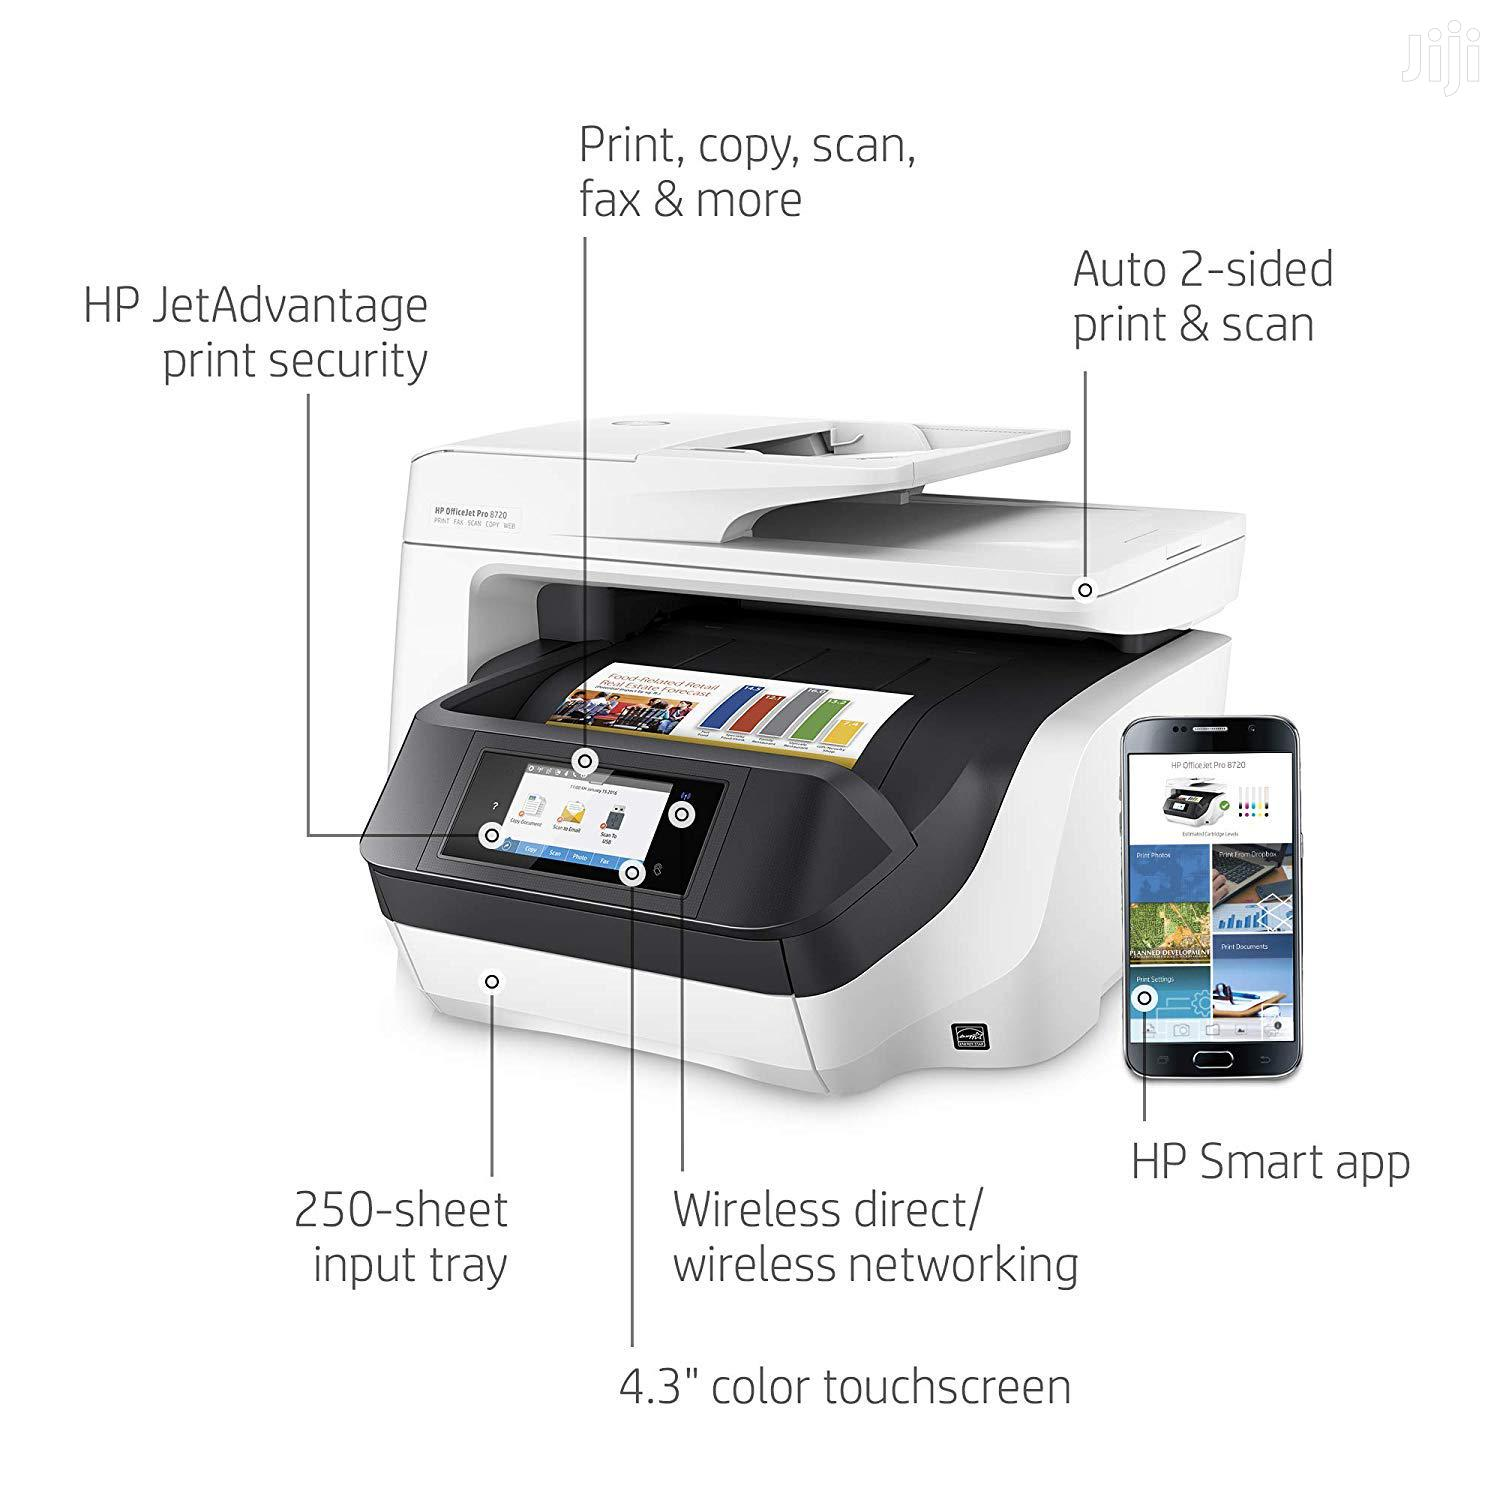 HP Officejet Pro 8720 All-In-One Printer | Printers & Scanners for sale in Wuse 2, Abuja (FCT) State, Nigeria